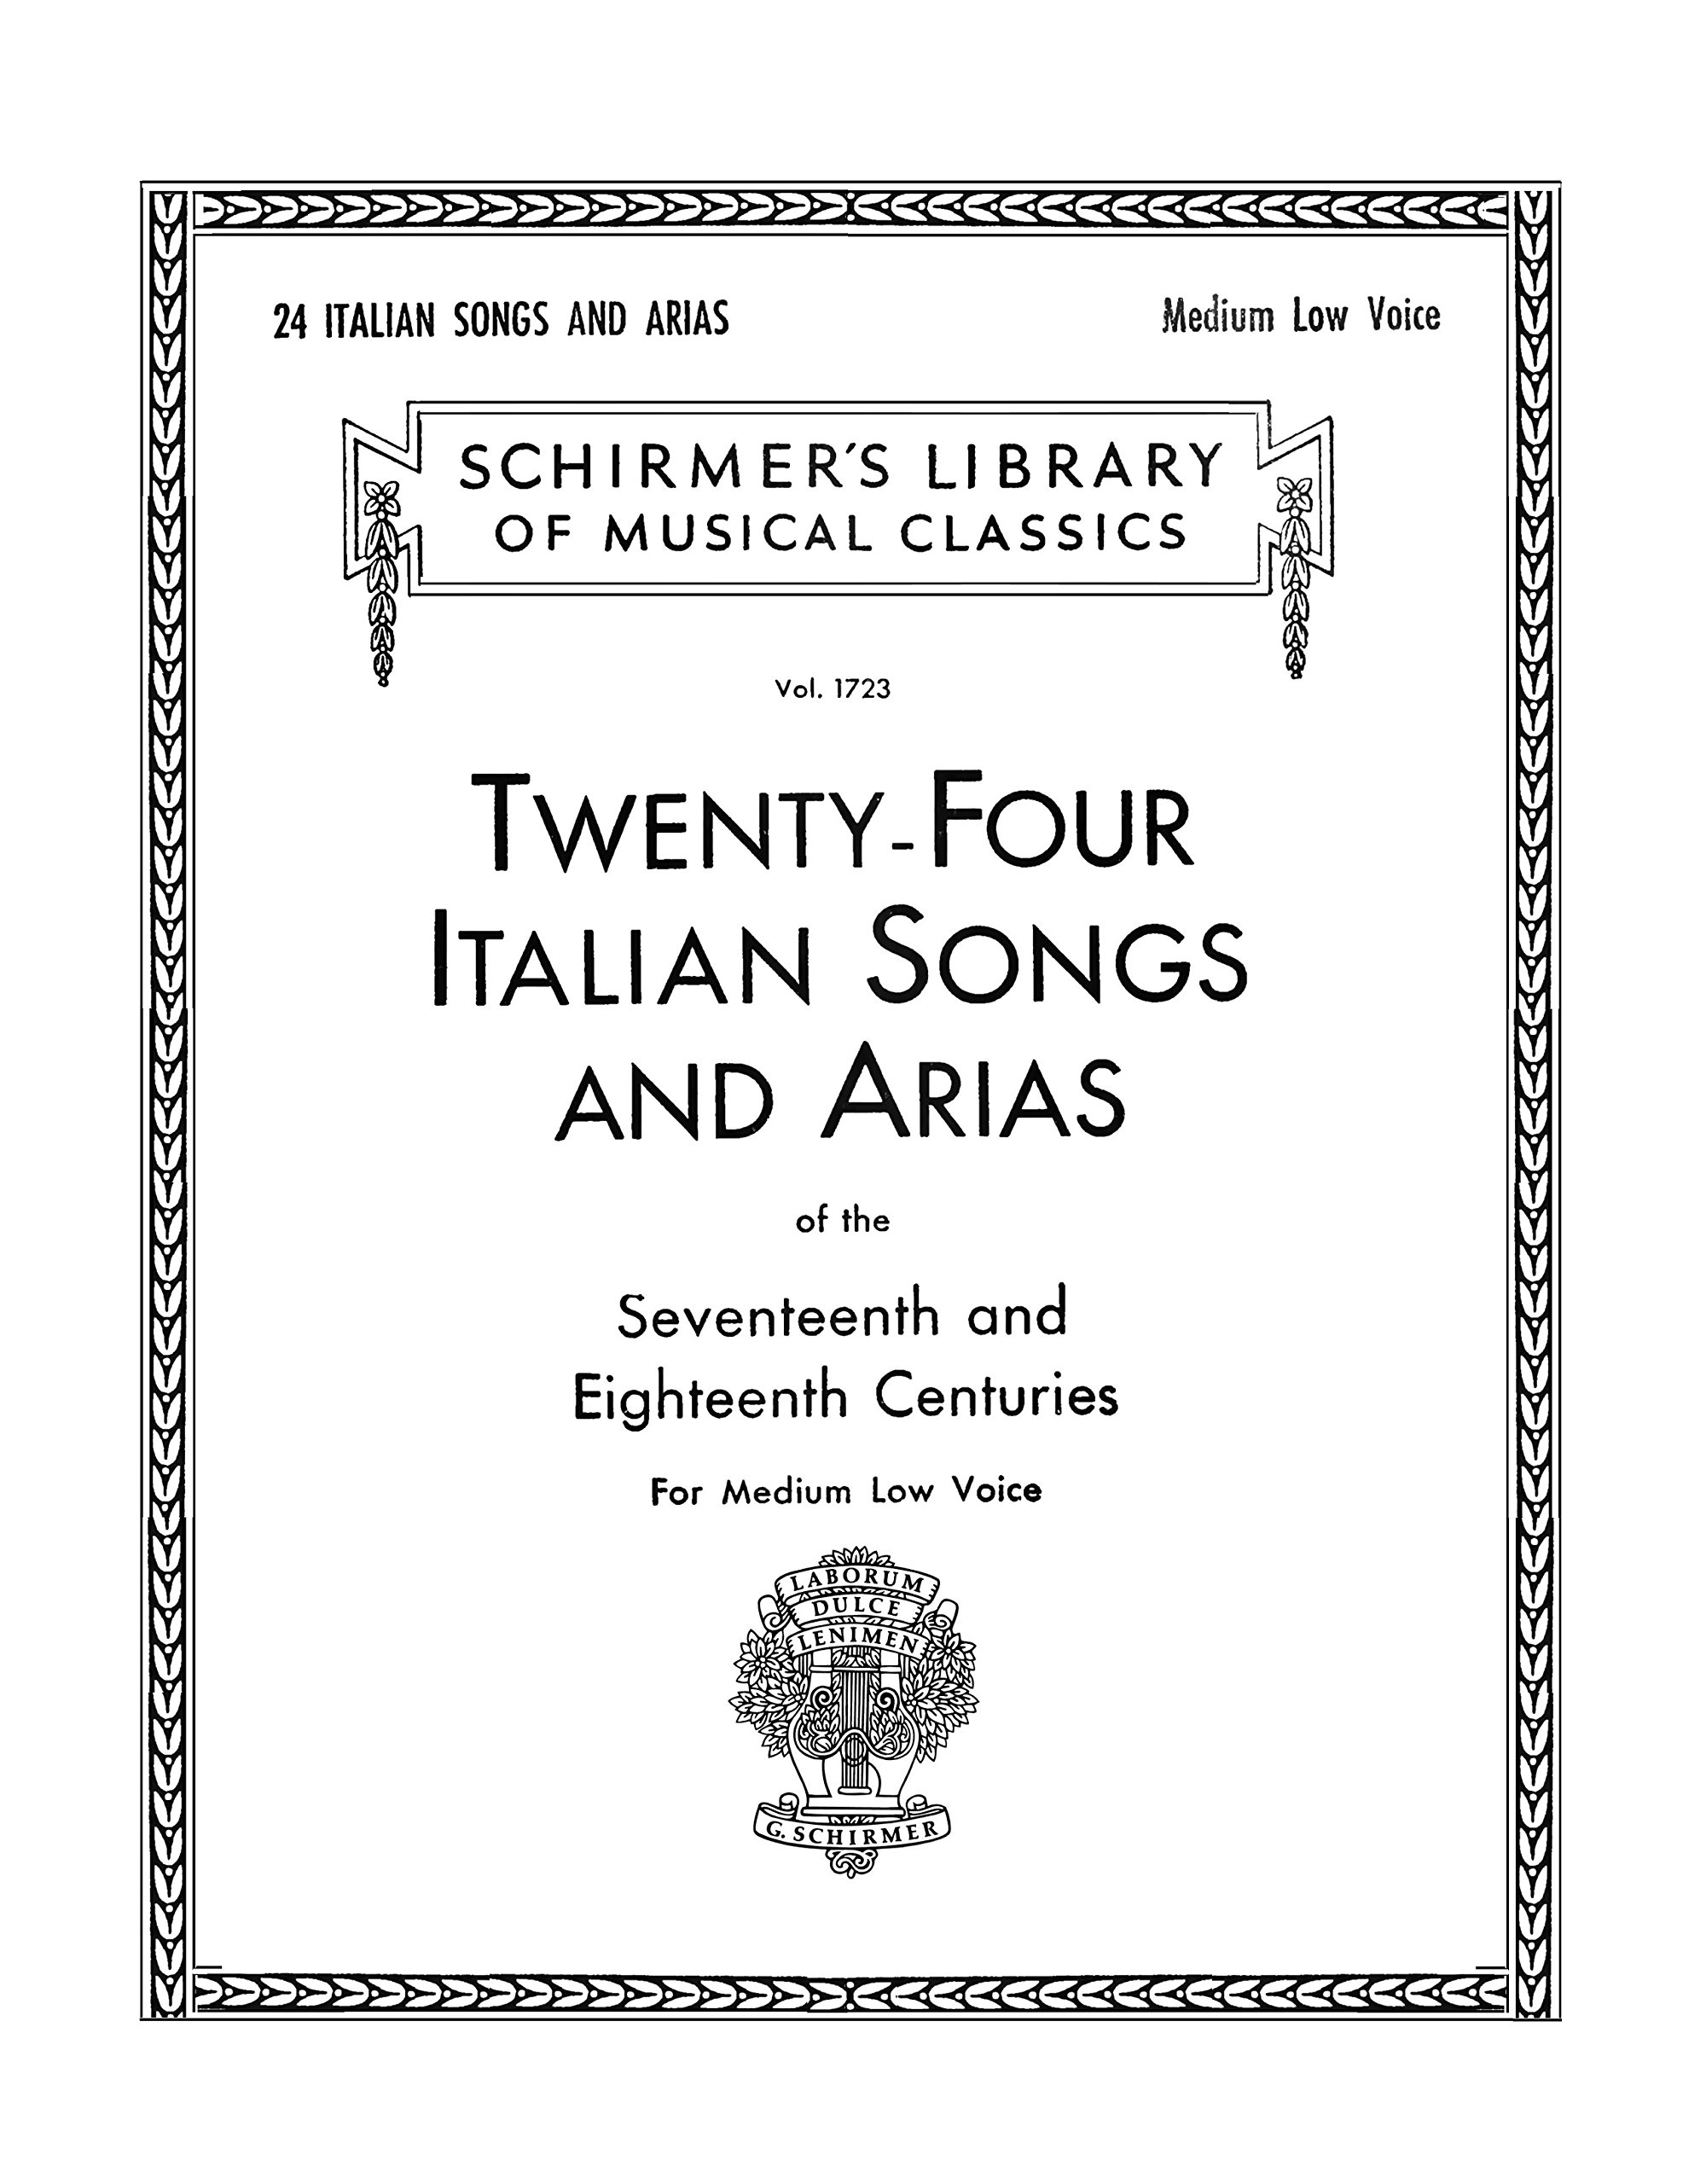 Download Twenty-four Italian songs and arias of the seventeenth and eighteenth centuries, for medium low voice (Student Facsimile) PDF